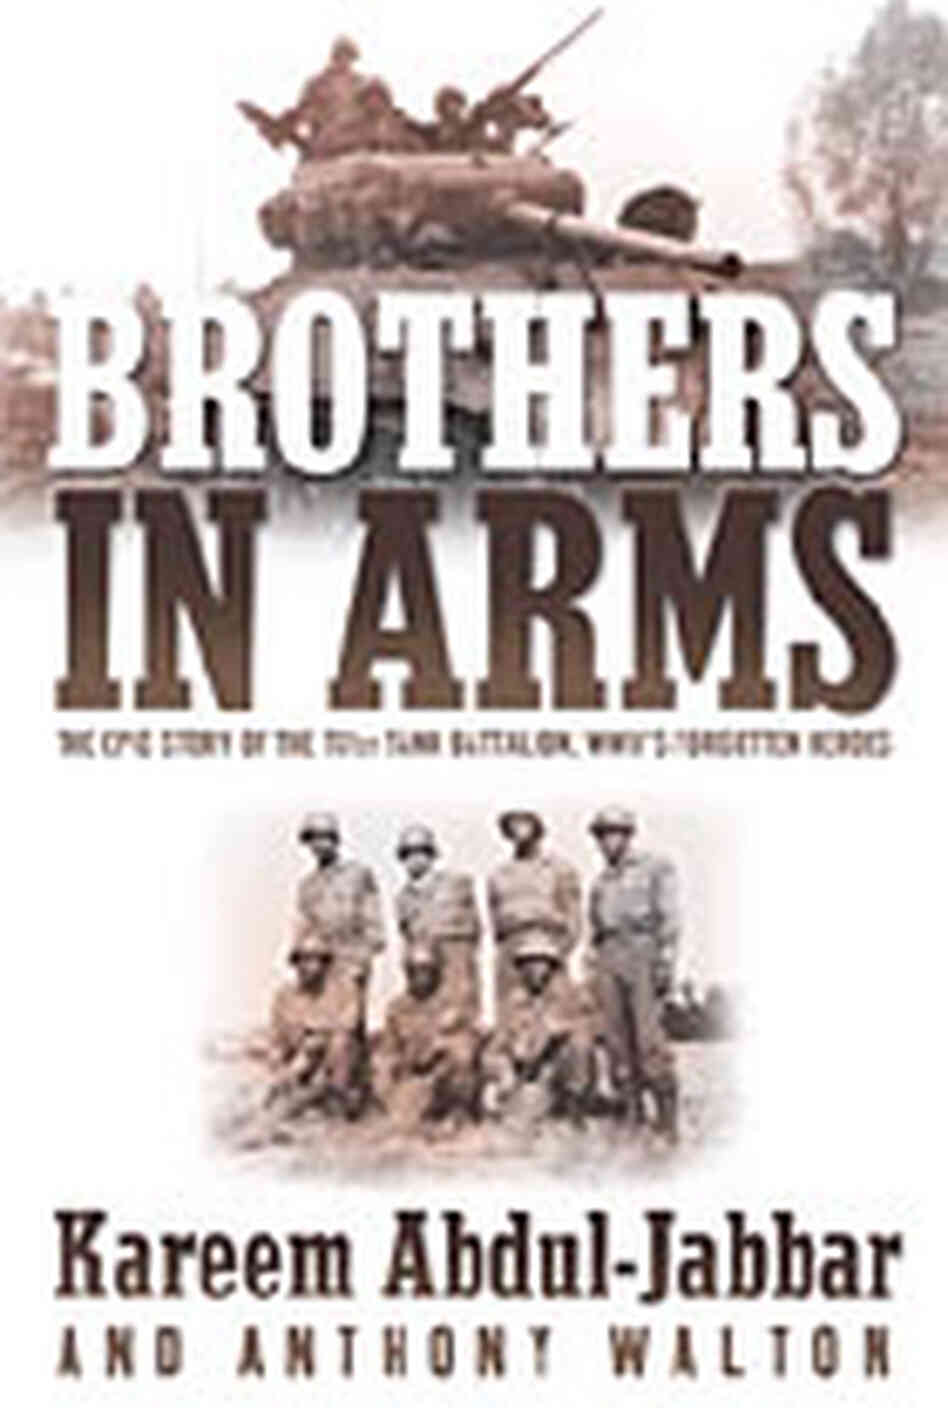 'Brothers in Arms' book cover